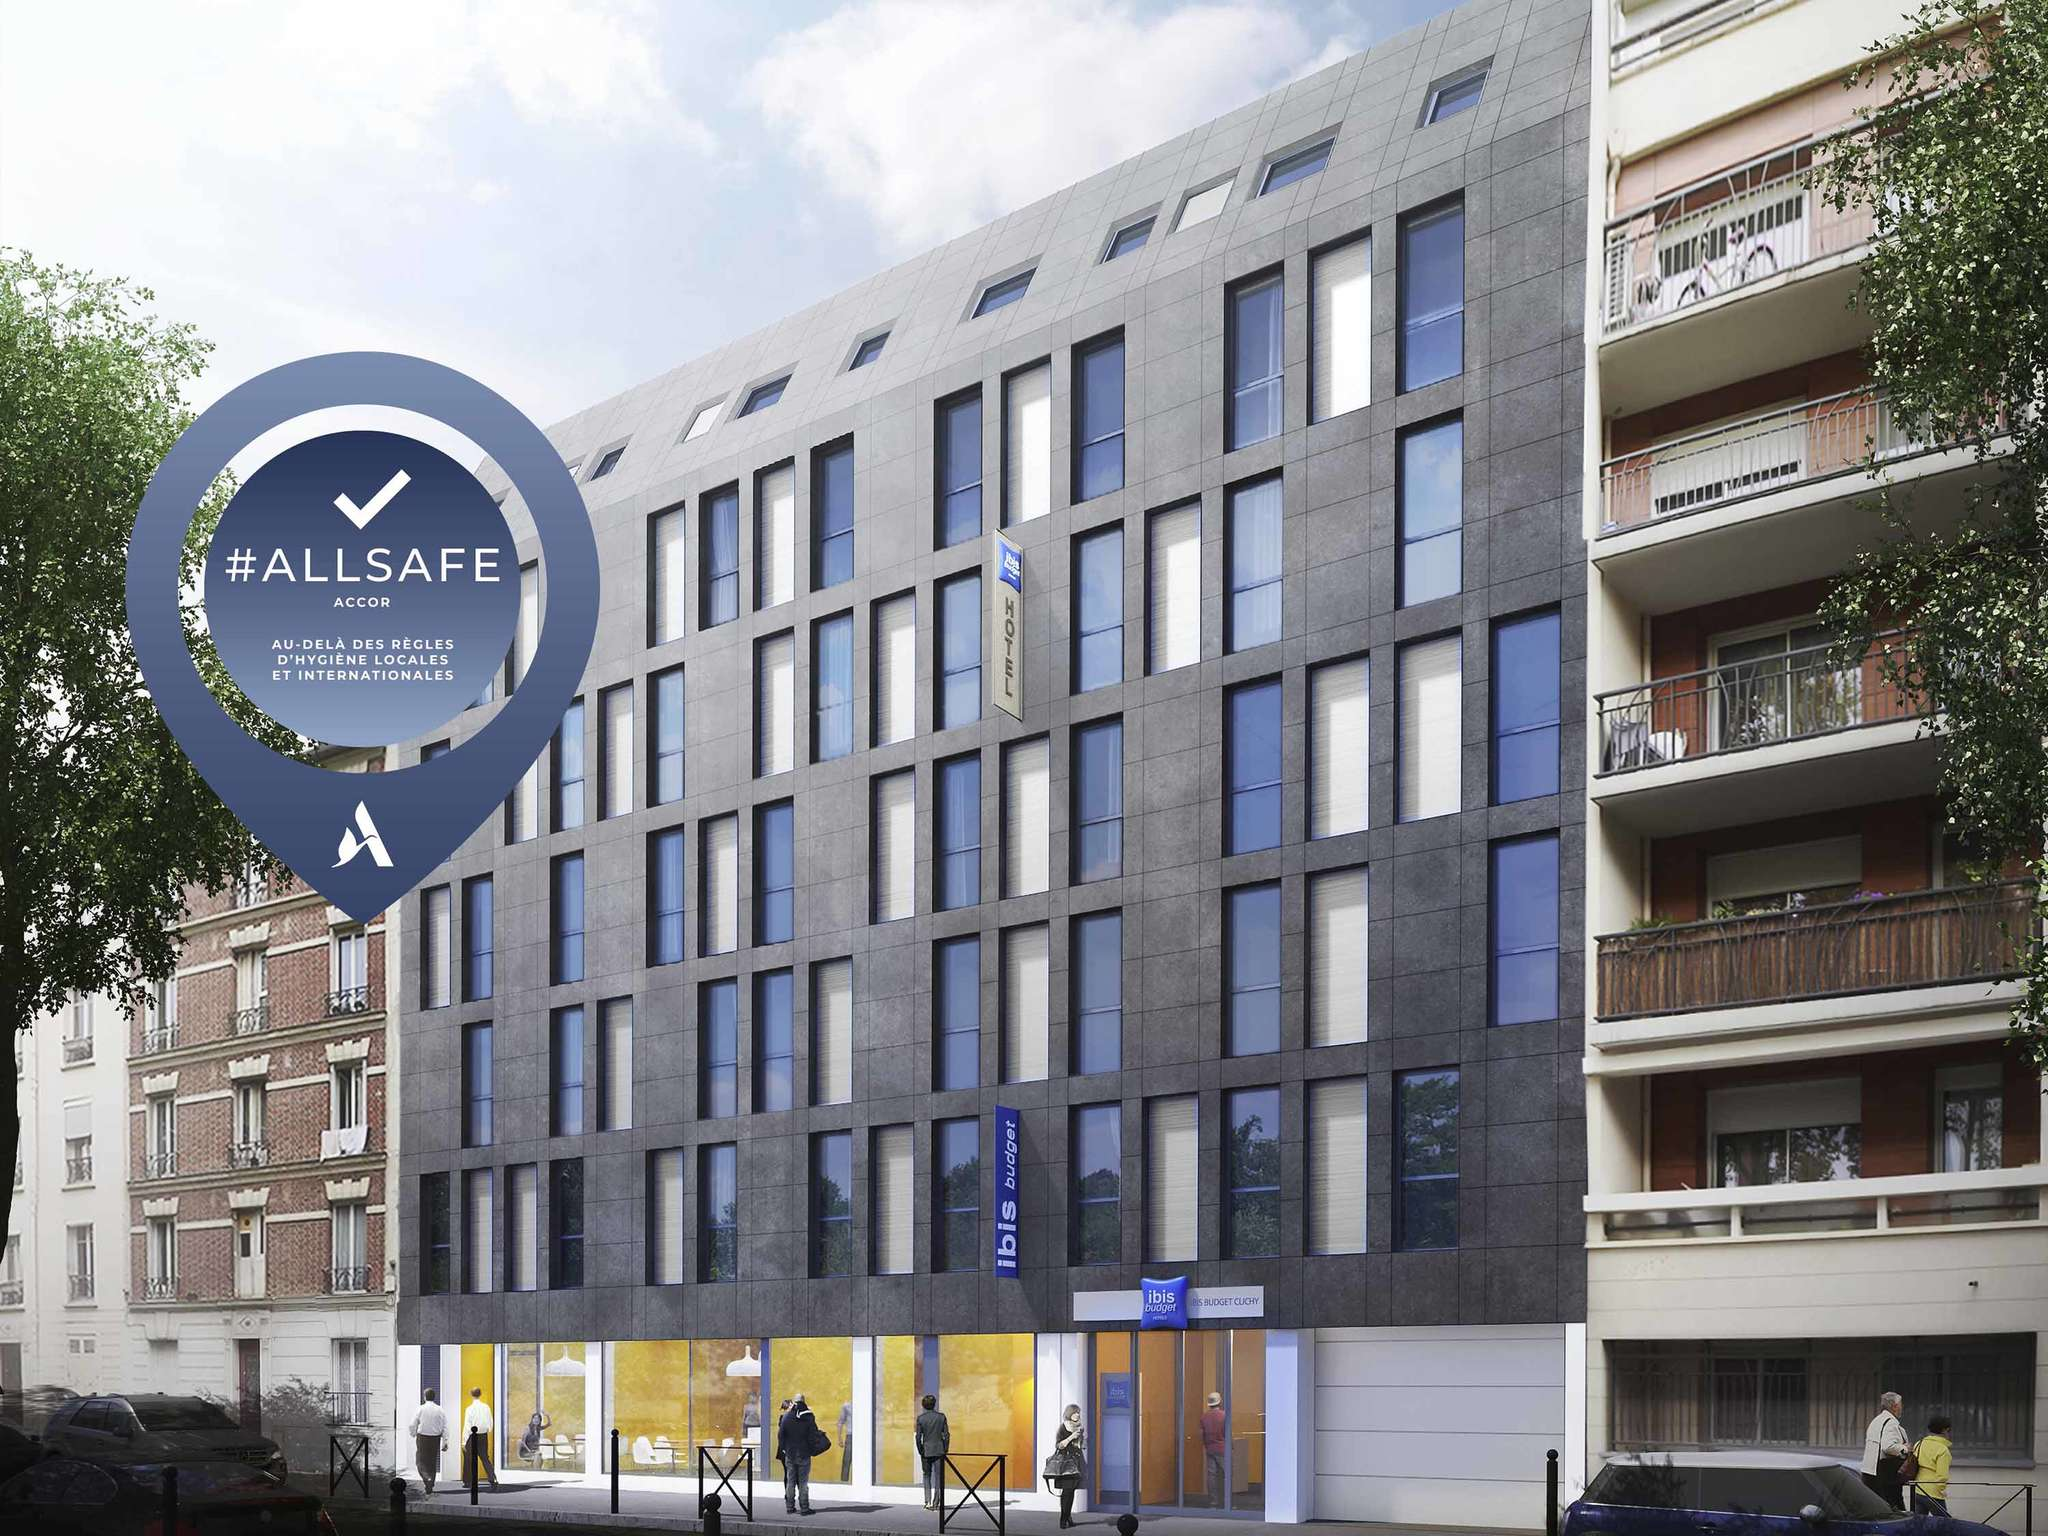 Hotel – ibis budget Paris Clichy Mairie (opening: april 2018)